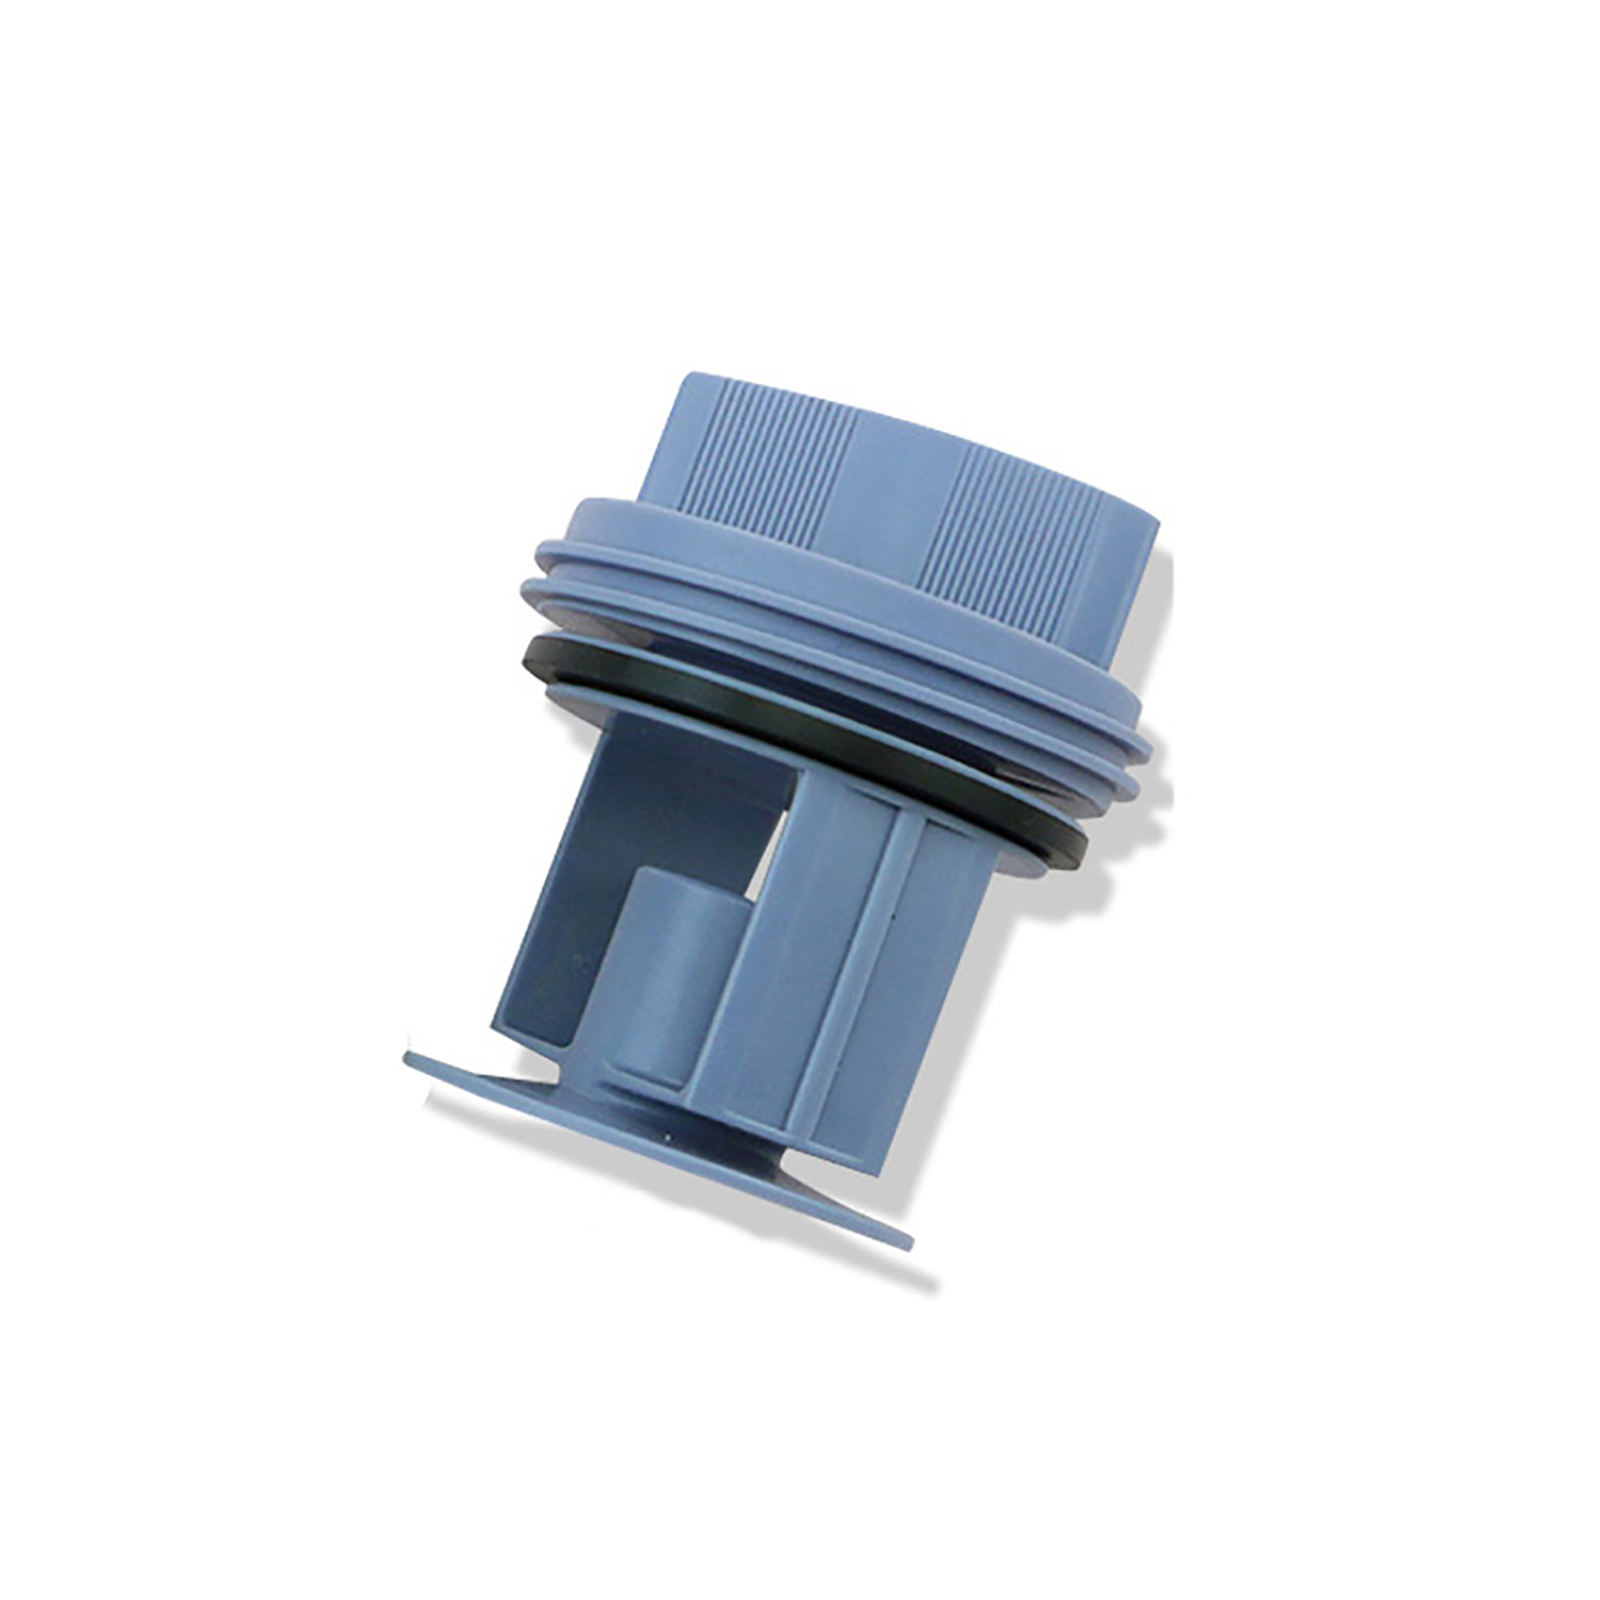 Washer Drainage Pump For Siemens Bosch WM1095/1065 WD7205 Washing Machine Drain Outlet Seal Cover Plug Replacement Accessories